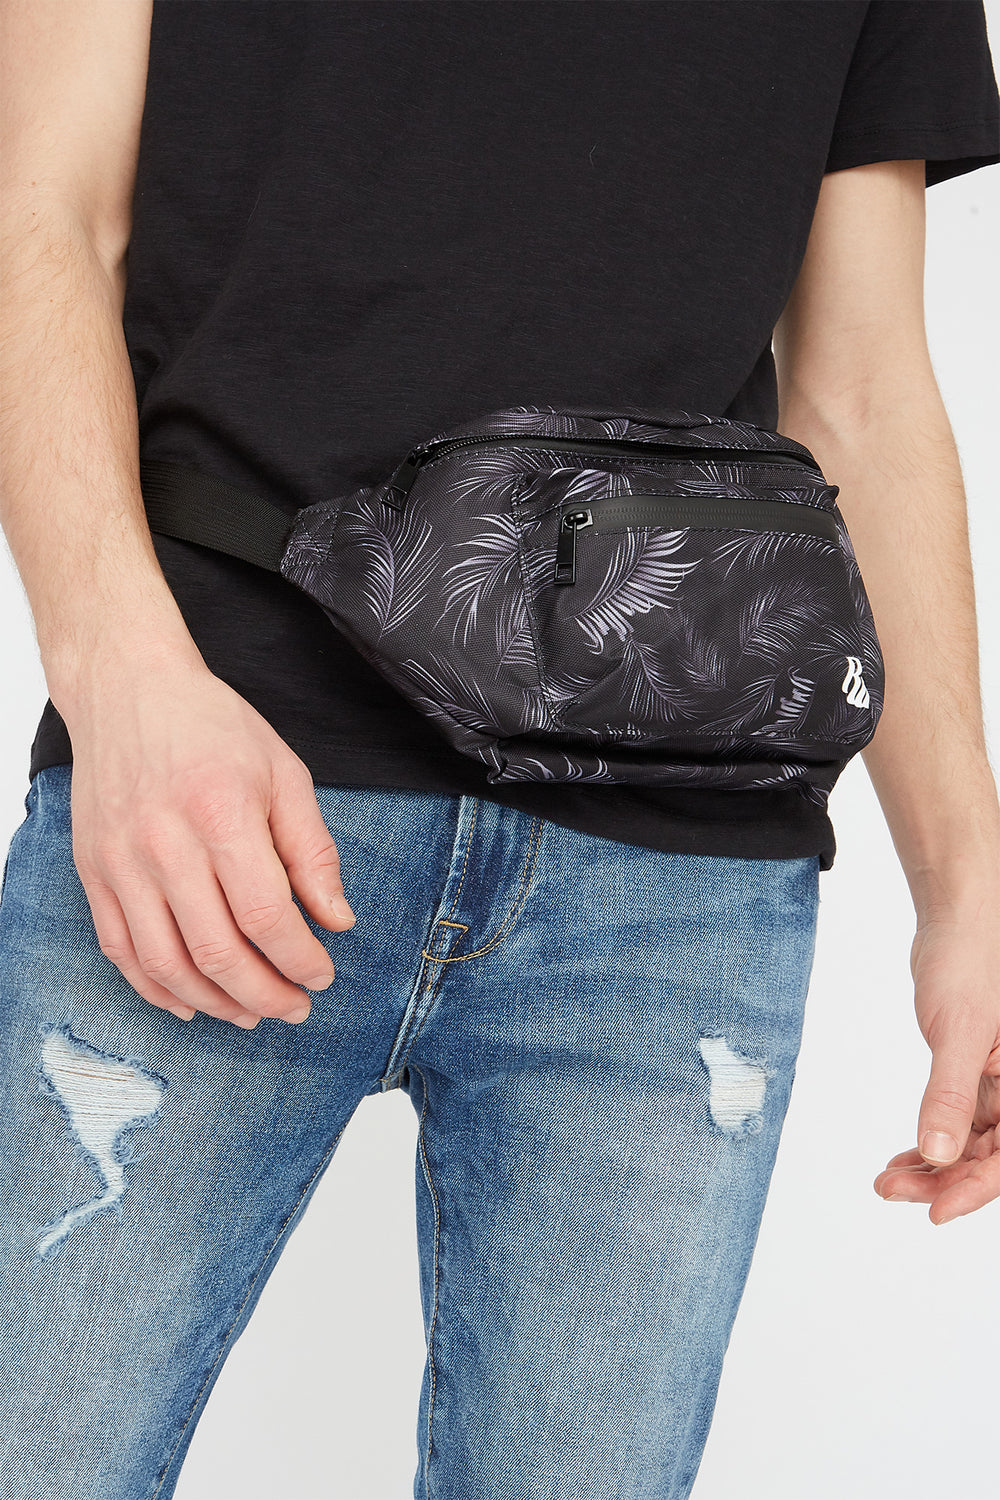 Rocawear Palm Leaf Printed Fanny Pack Black